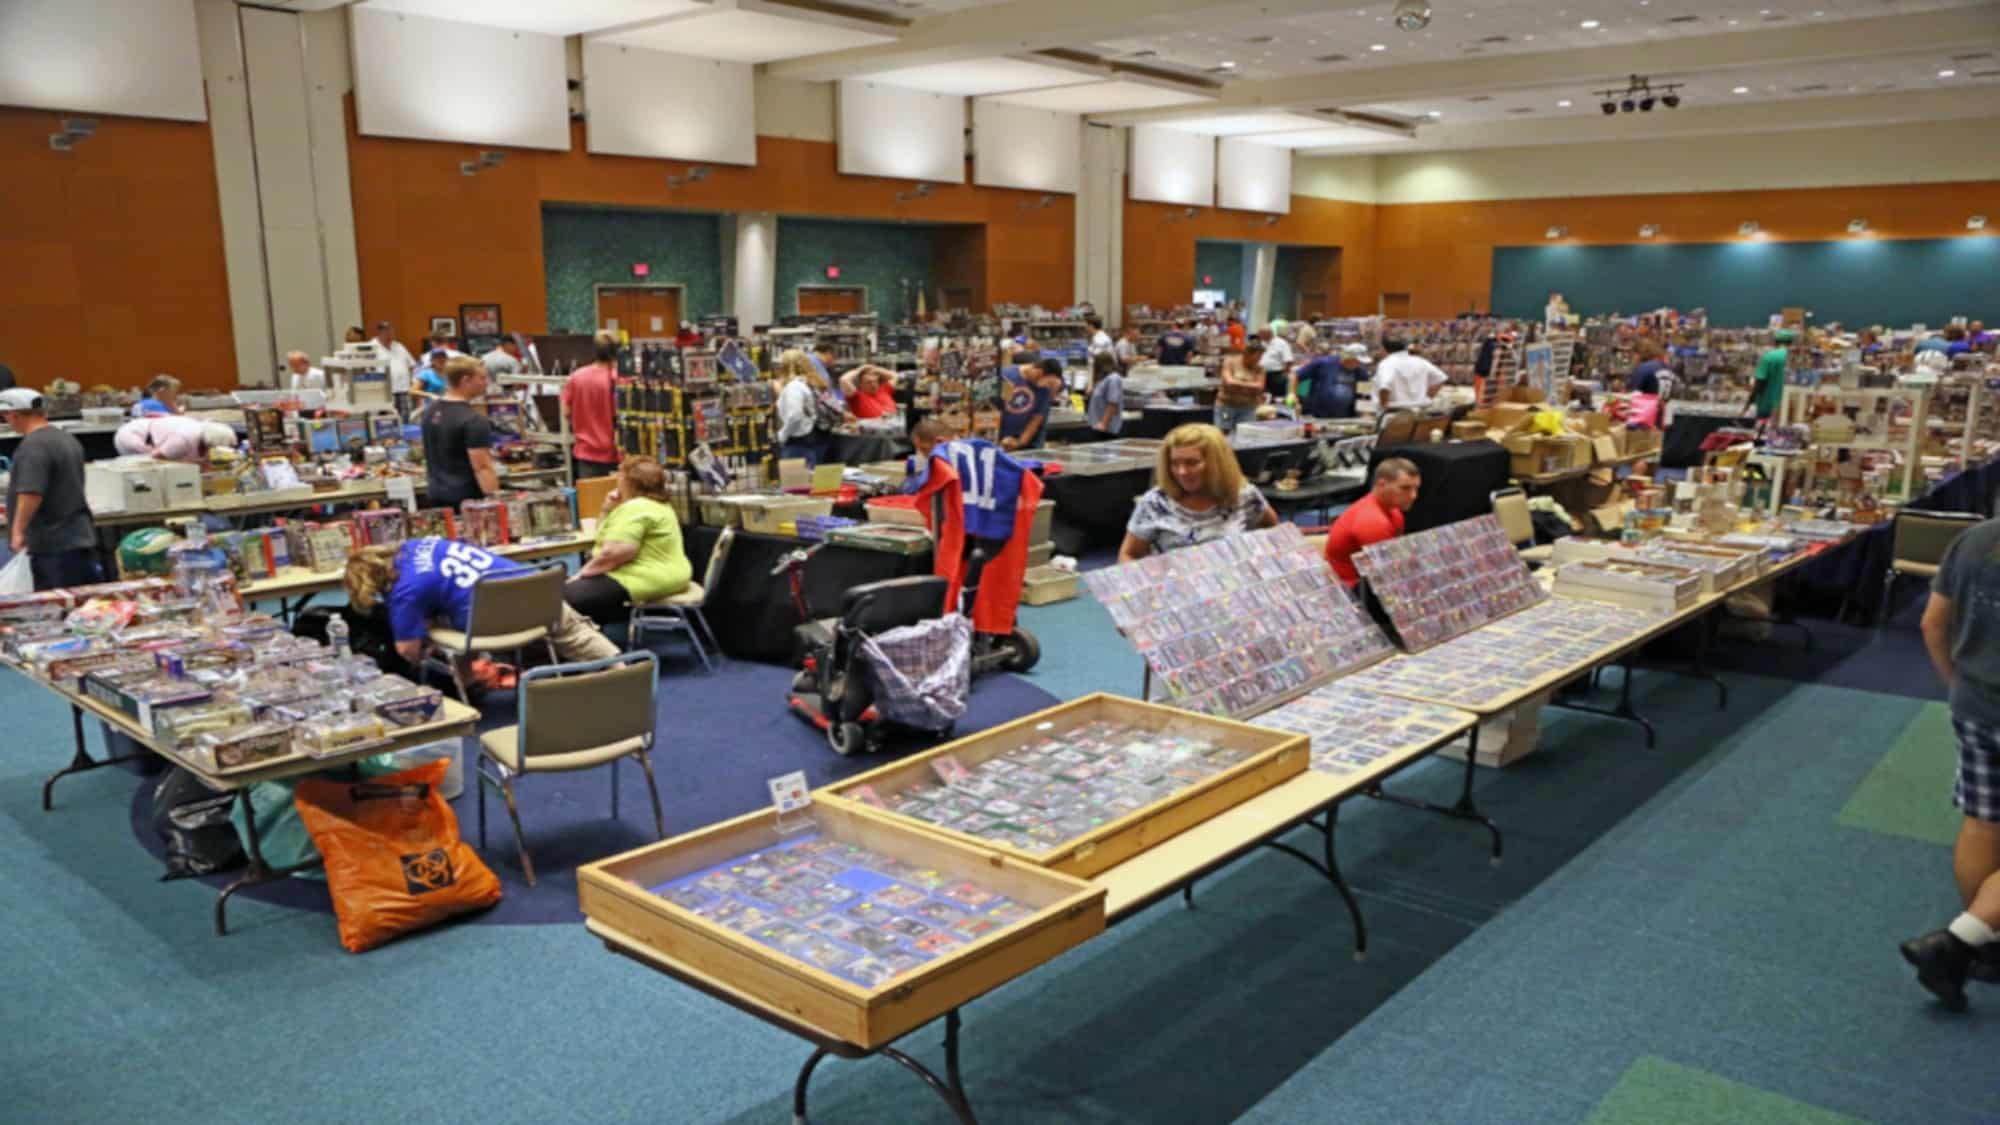 People investing in collectibles at a trade show buying and selling Pokemon cards, comic books, sports cards and more.